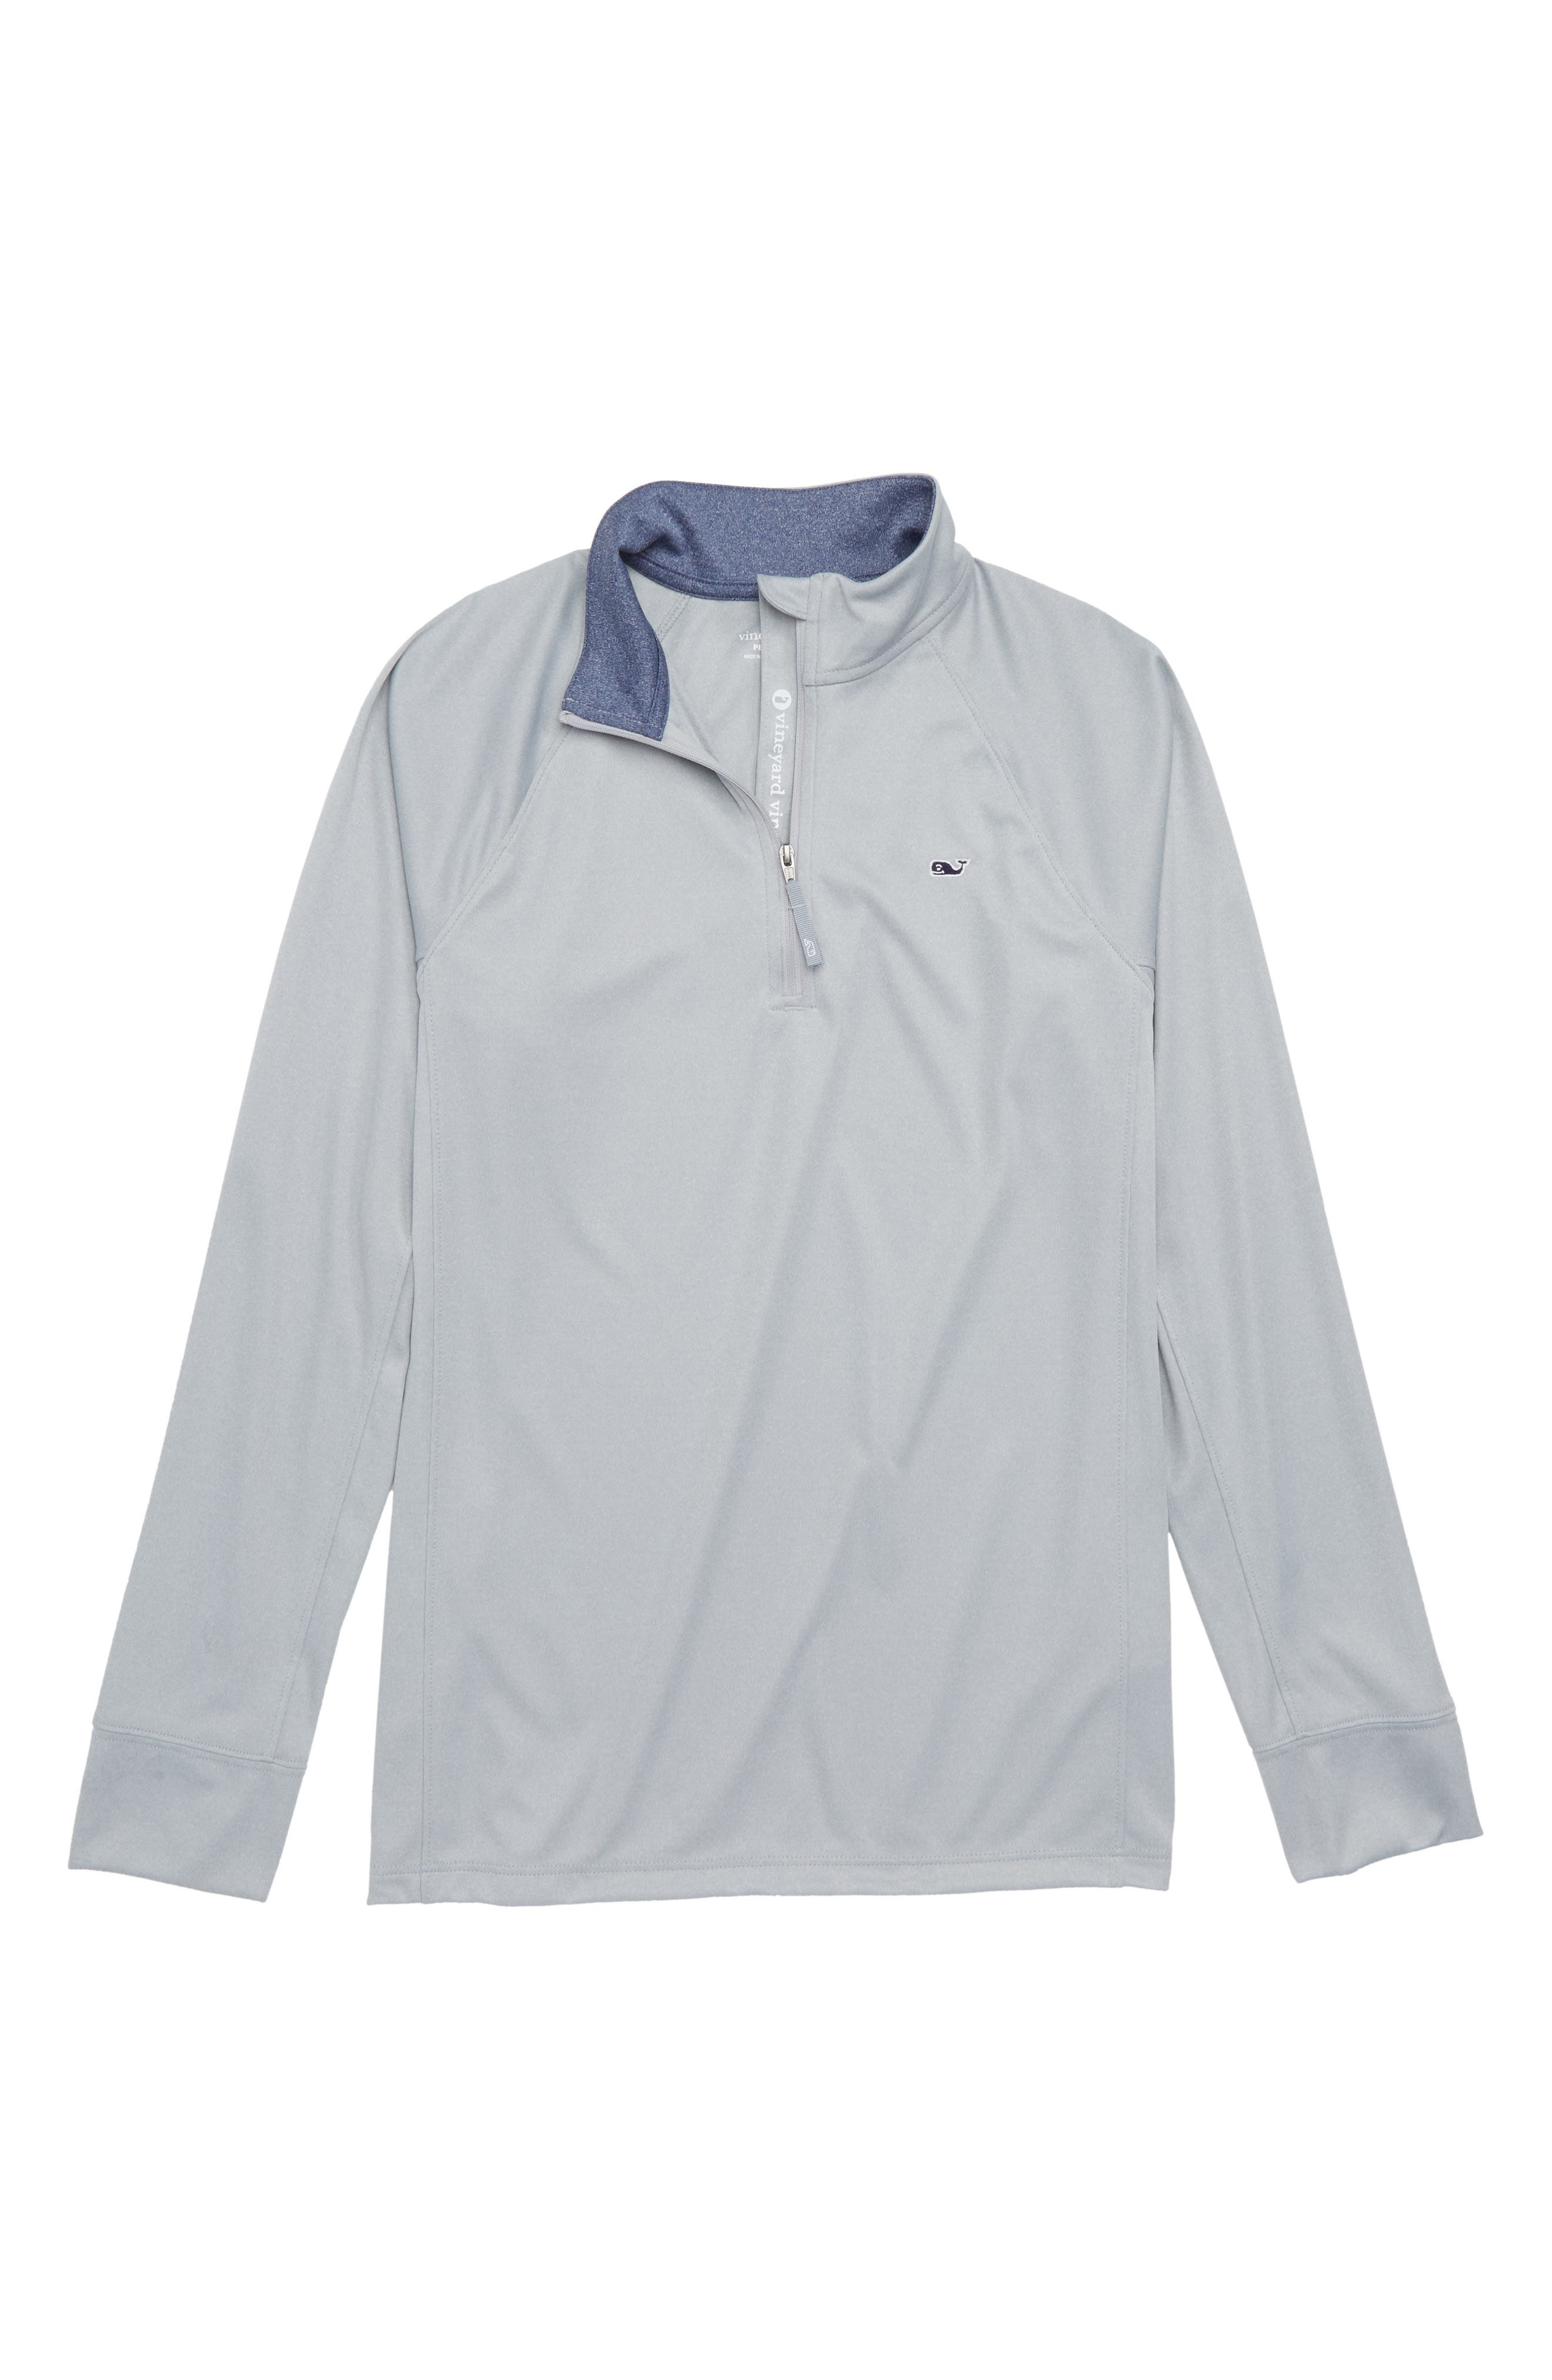 Performance Pullover,                         Main,                         color, 034